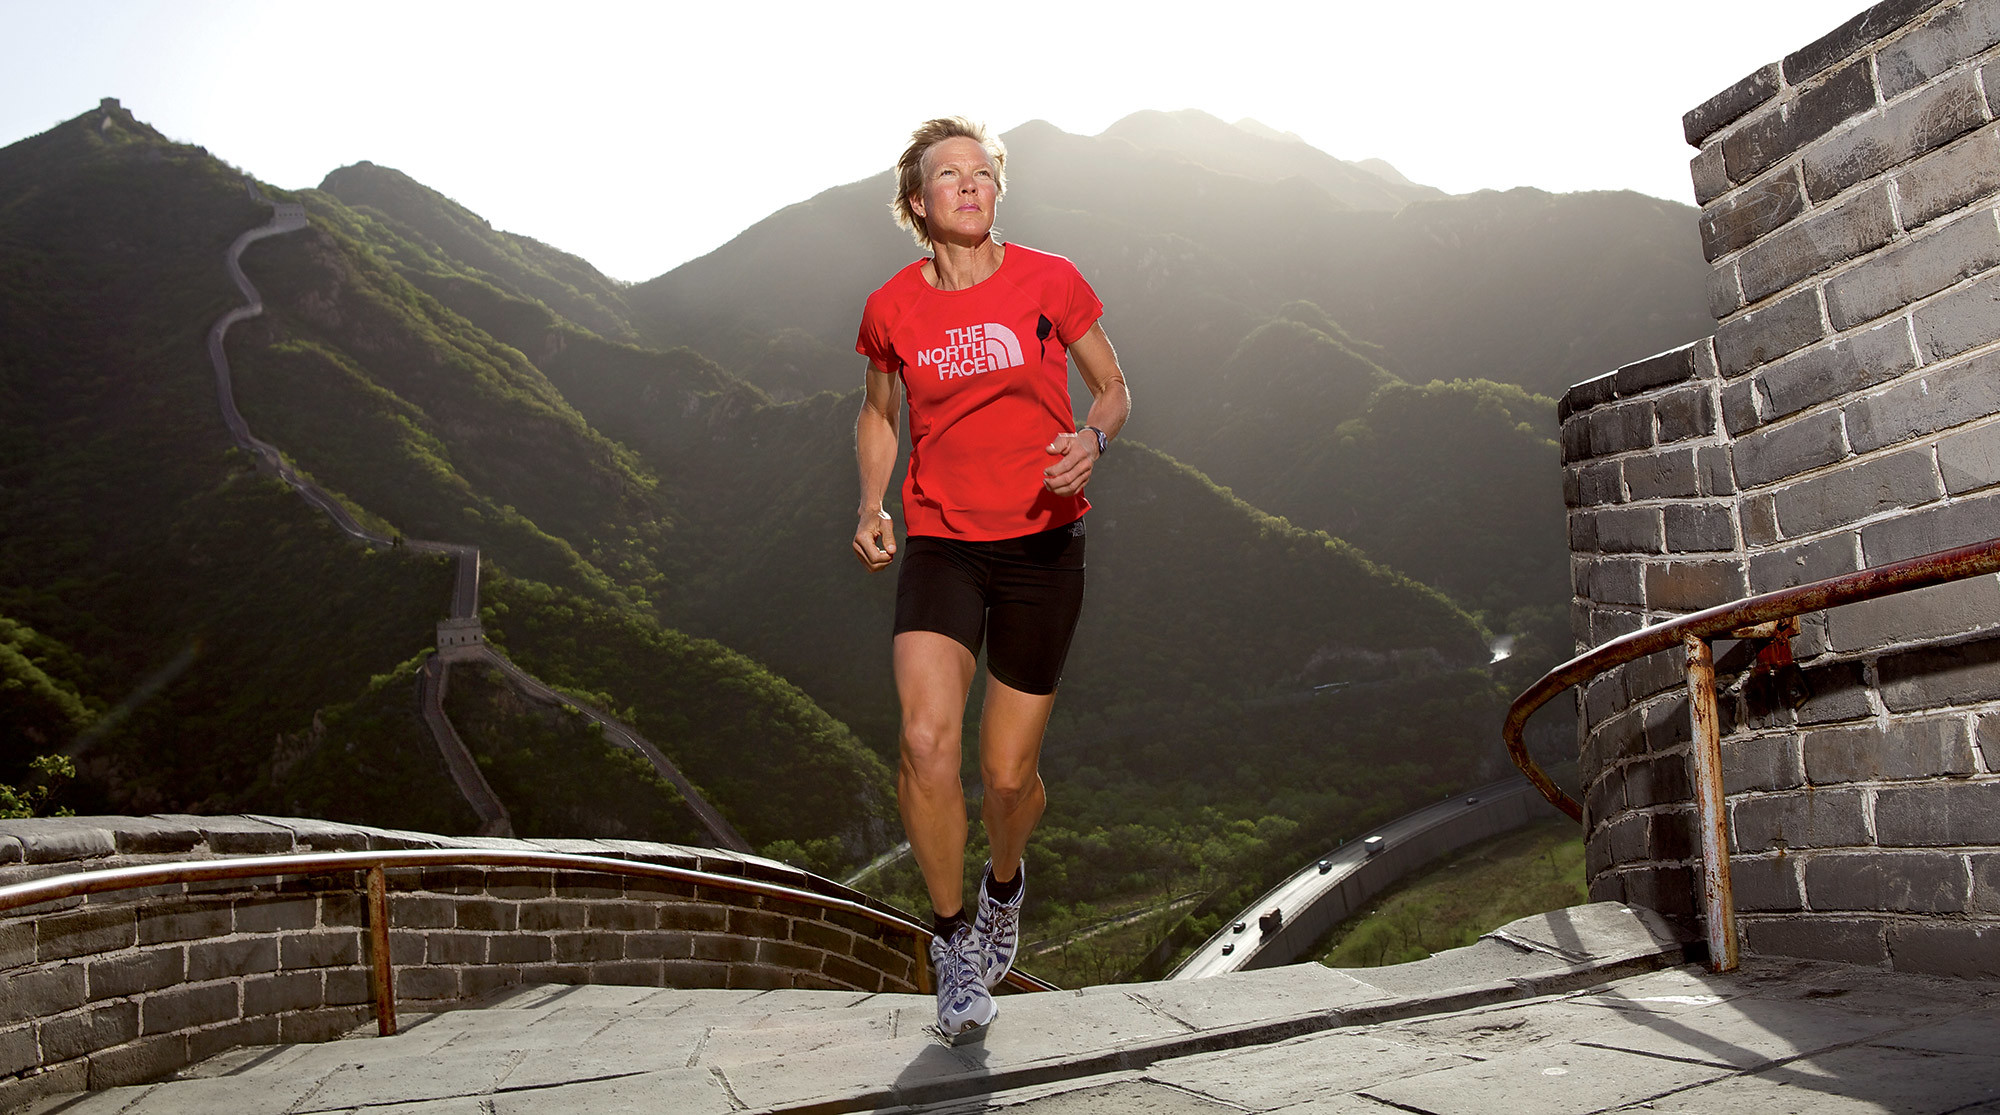 Ultra runner Diane Van Deren says running is her outlet, her medicine and she doesn't say I can't anymore